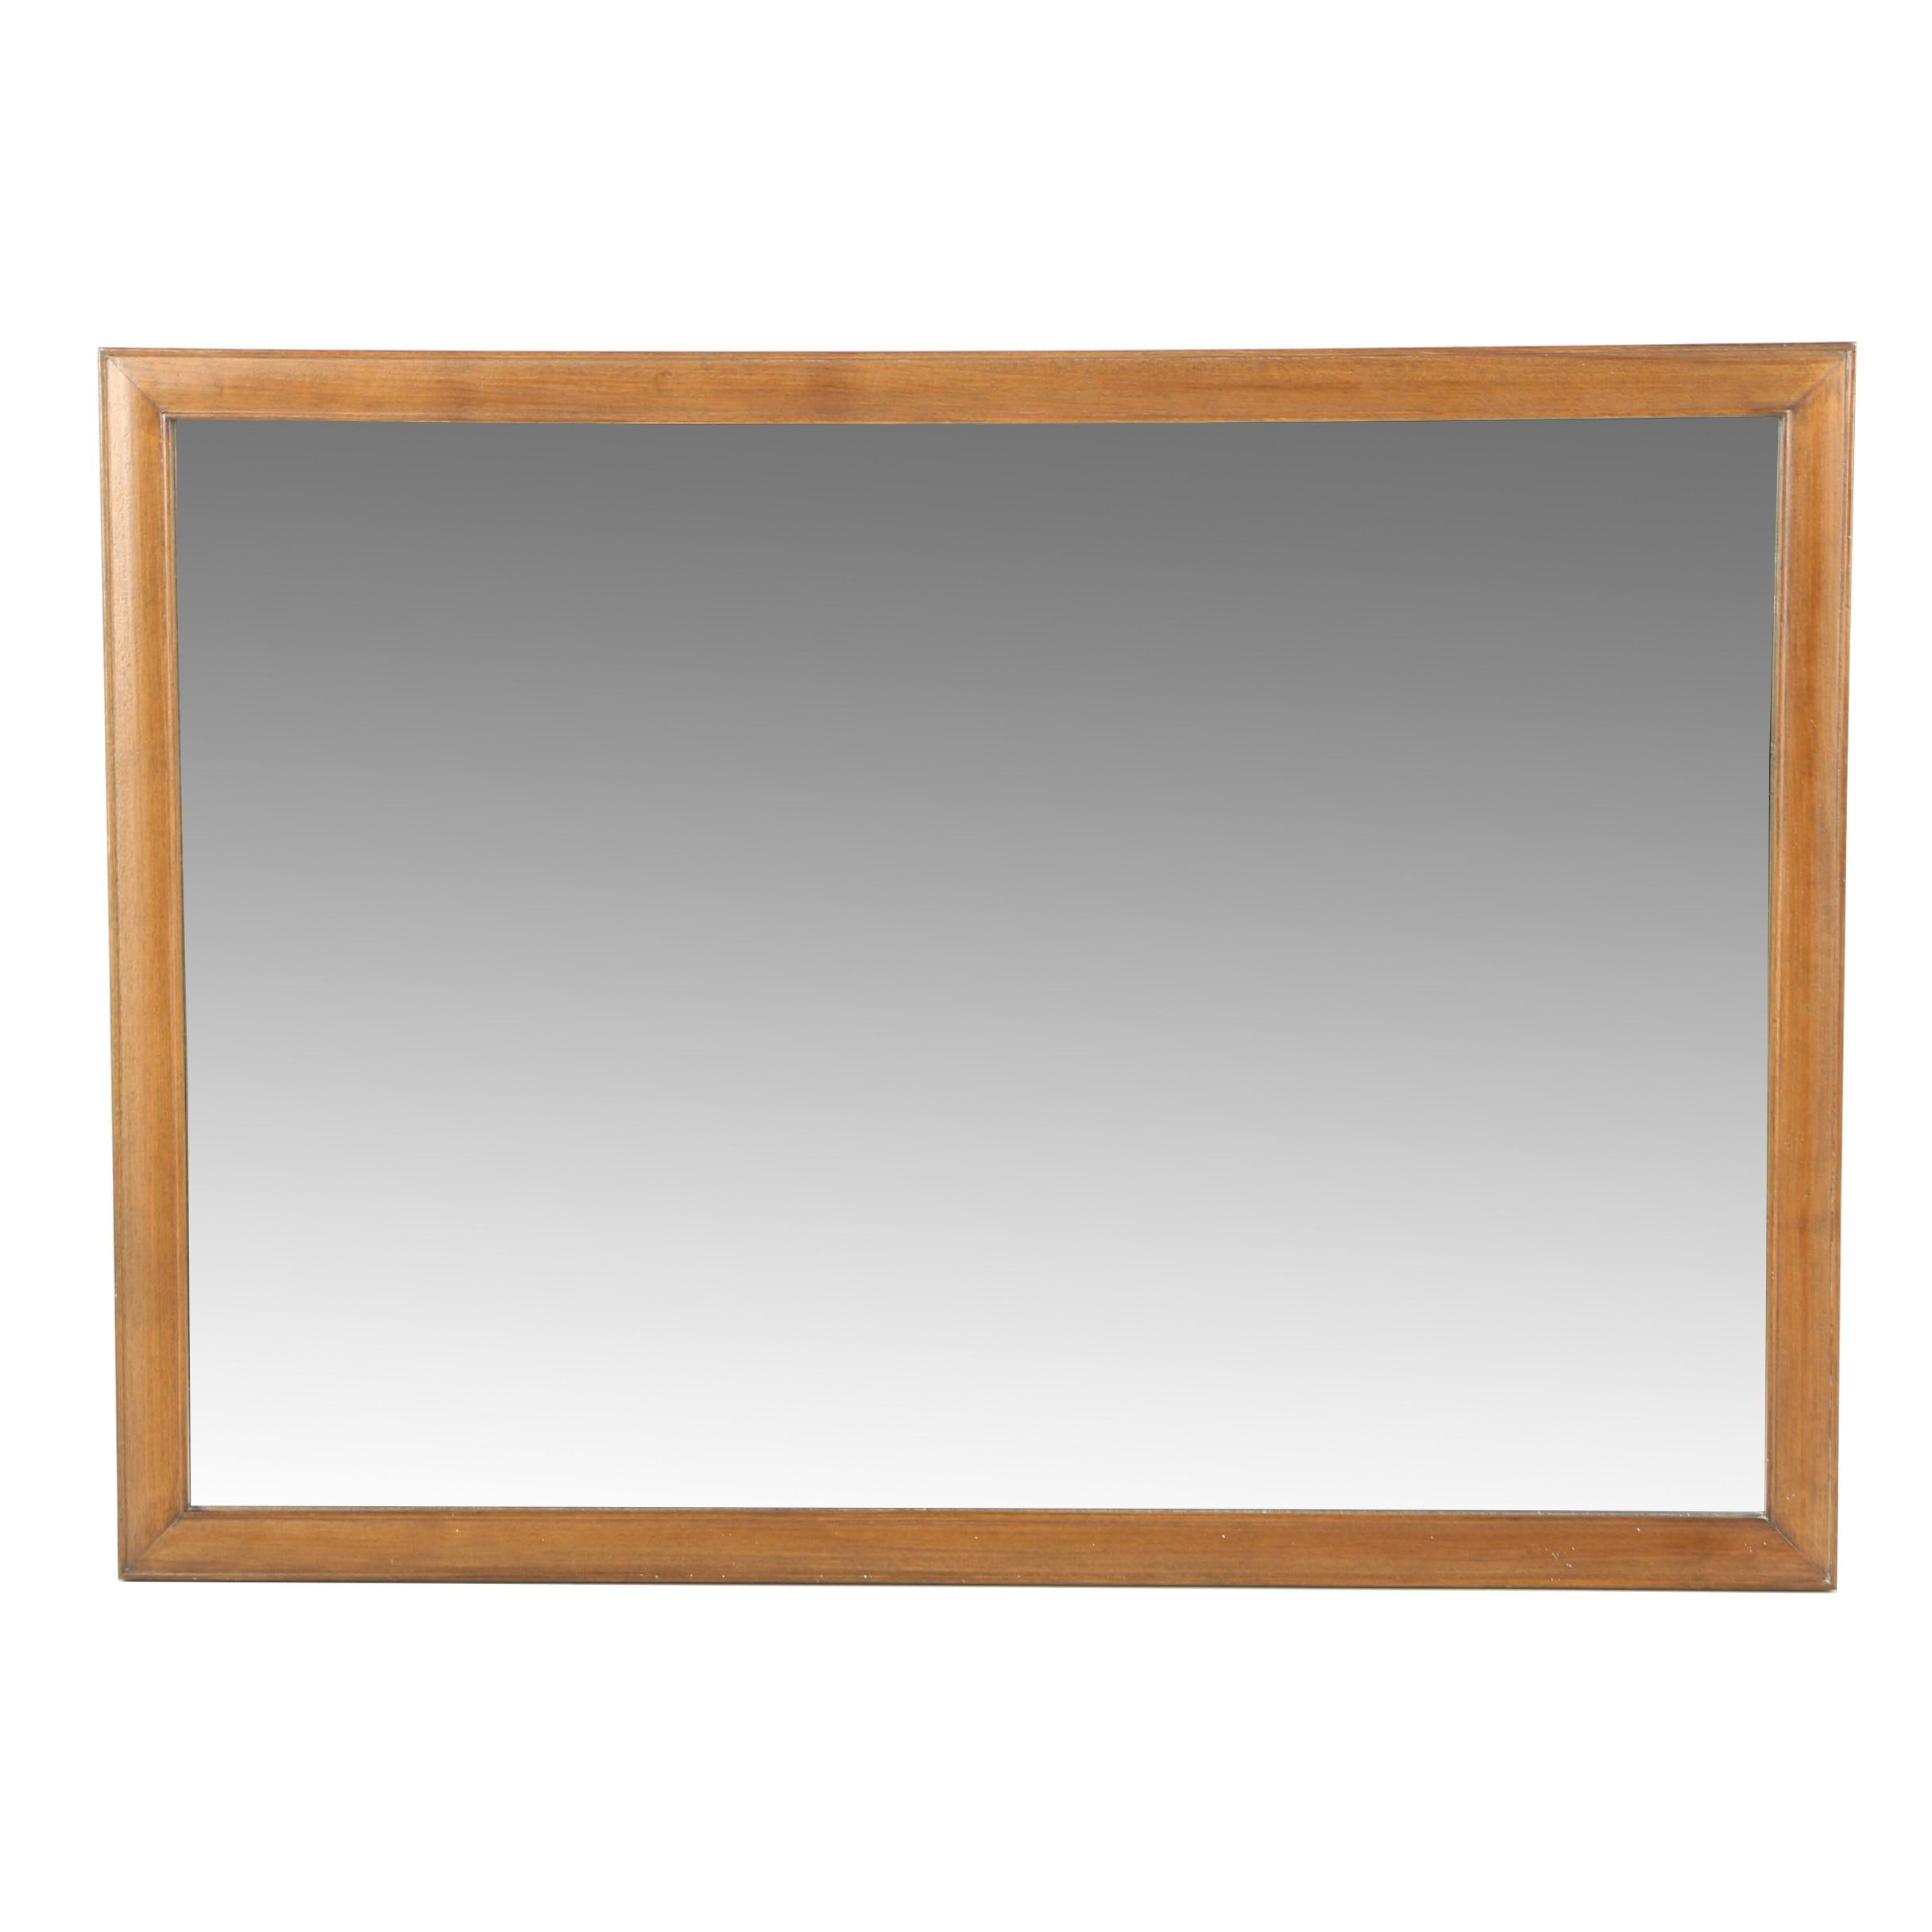 Over-Sized Wood Framed Wall Mirror